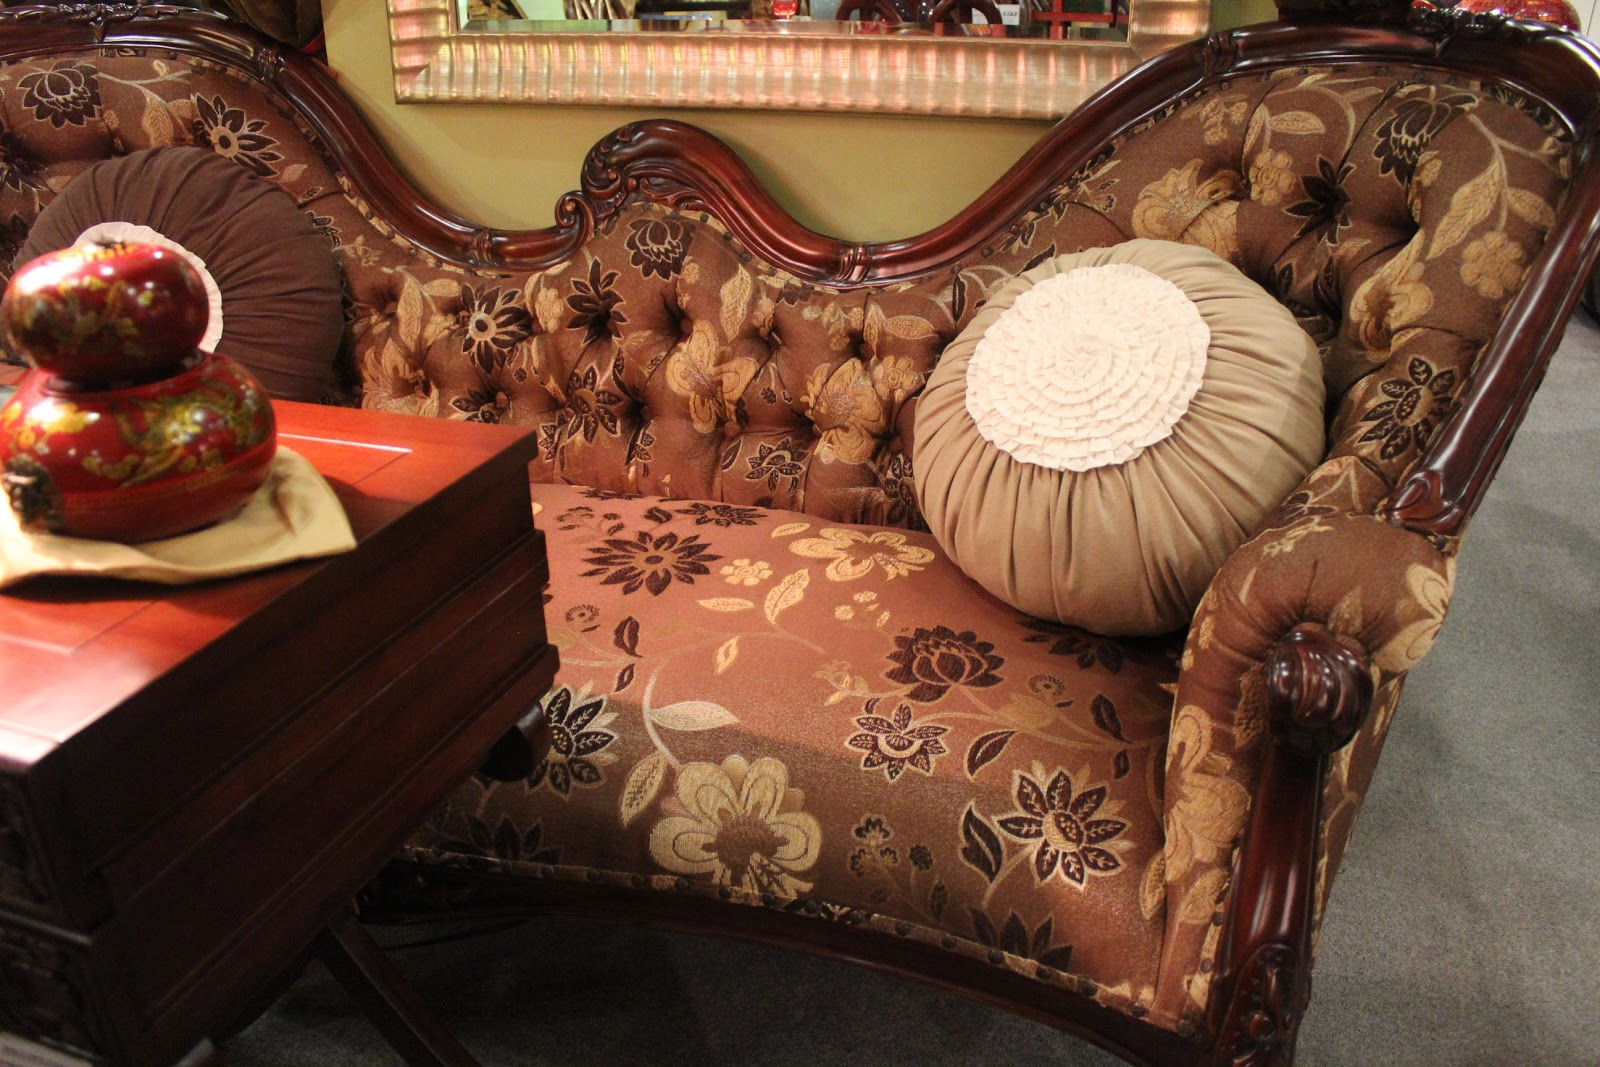 Spanish chair love seat fainting couch espana design for Small fainting couch